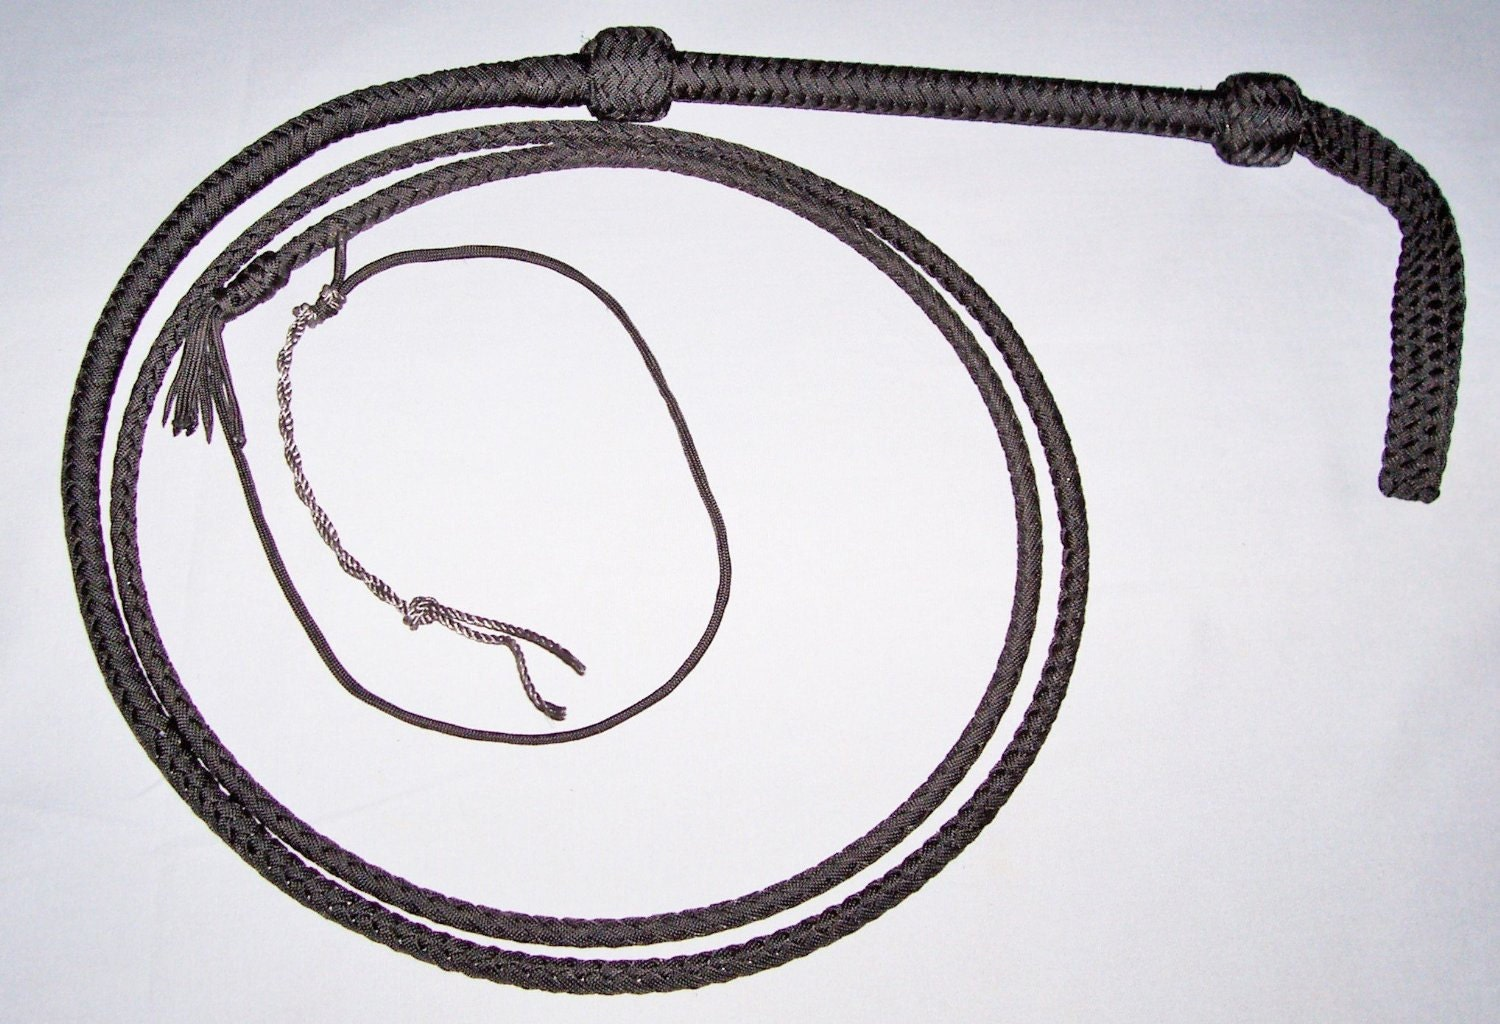 Amazzoni Nylon bull whip that